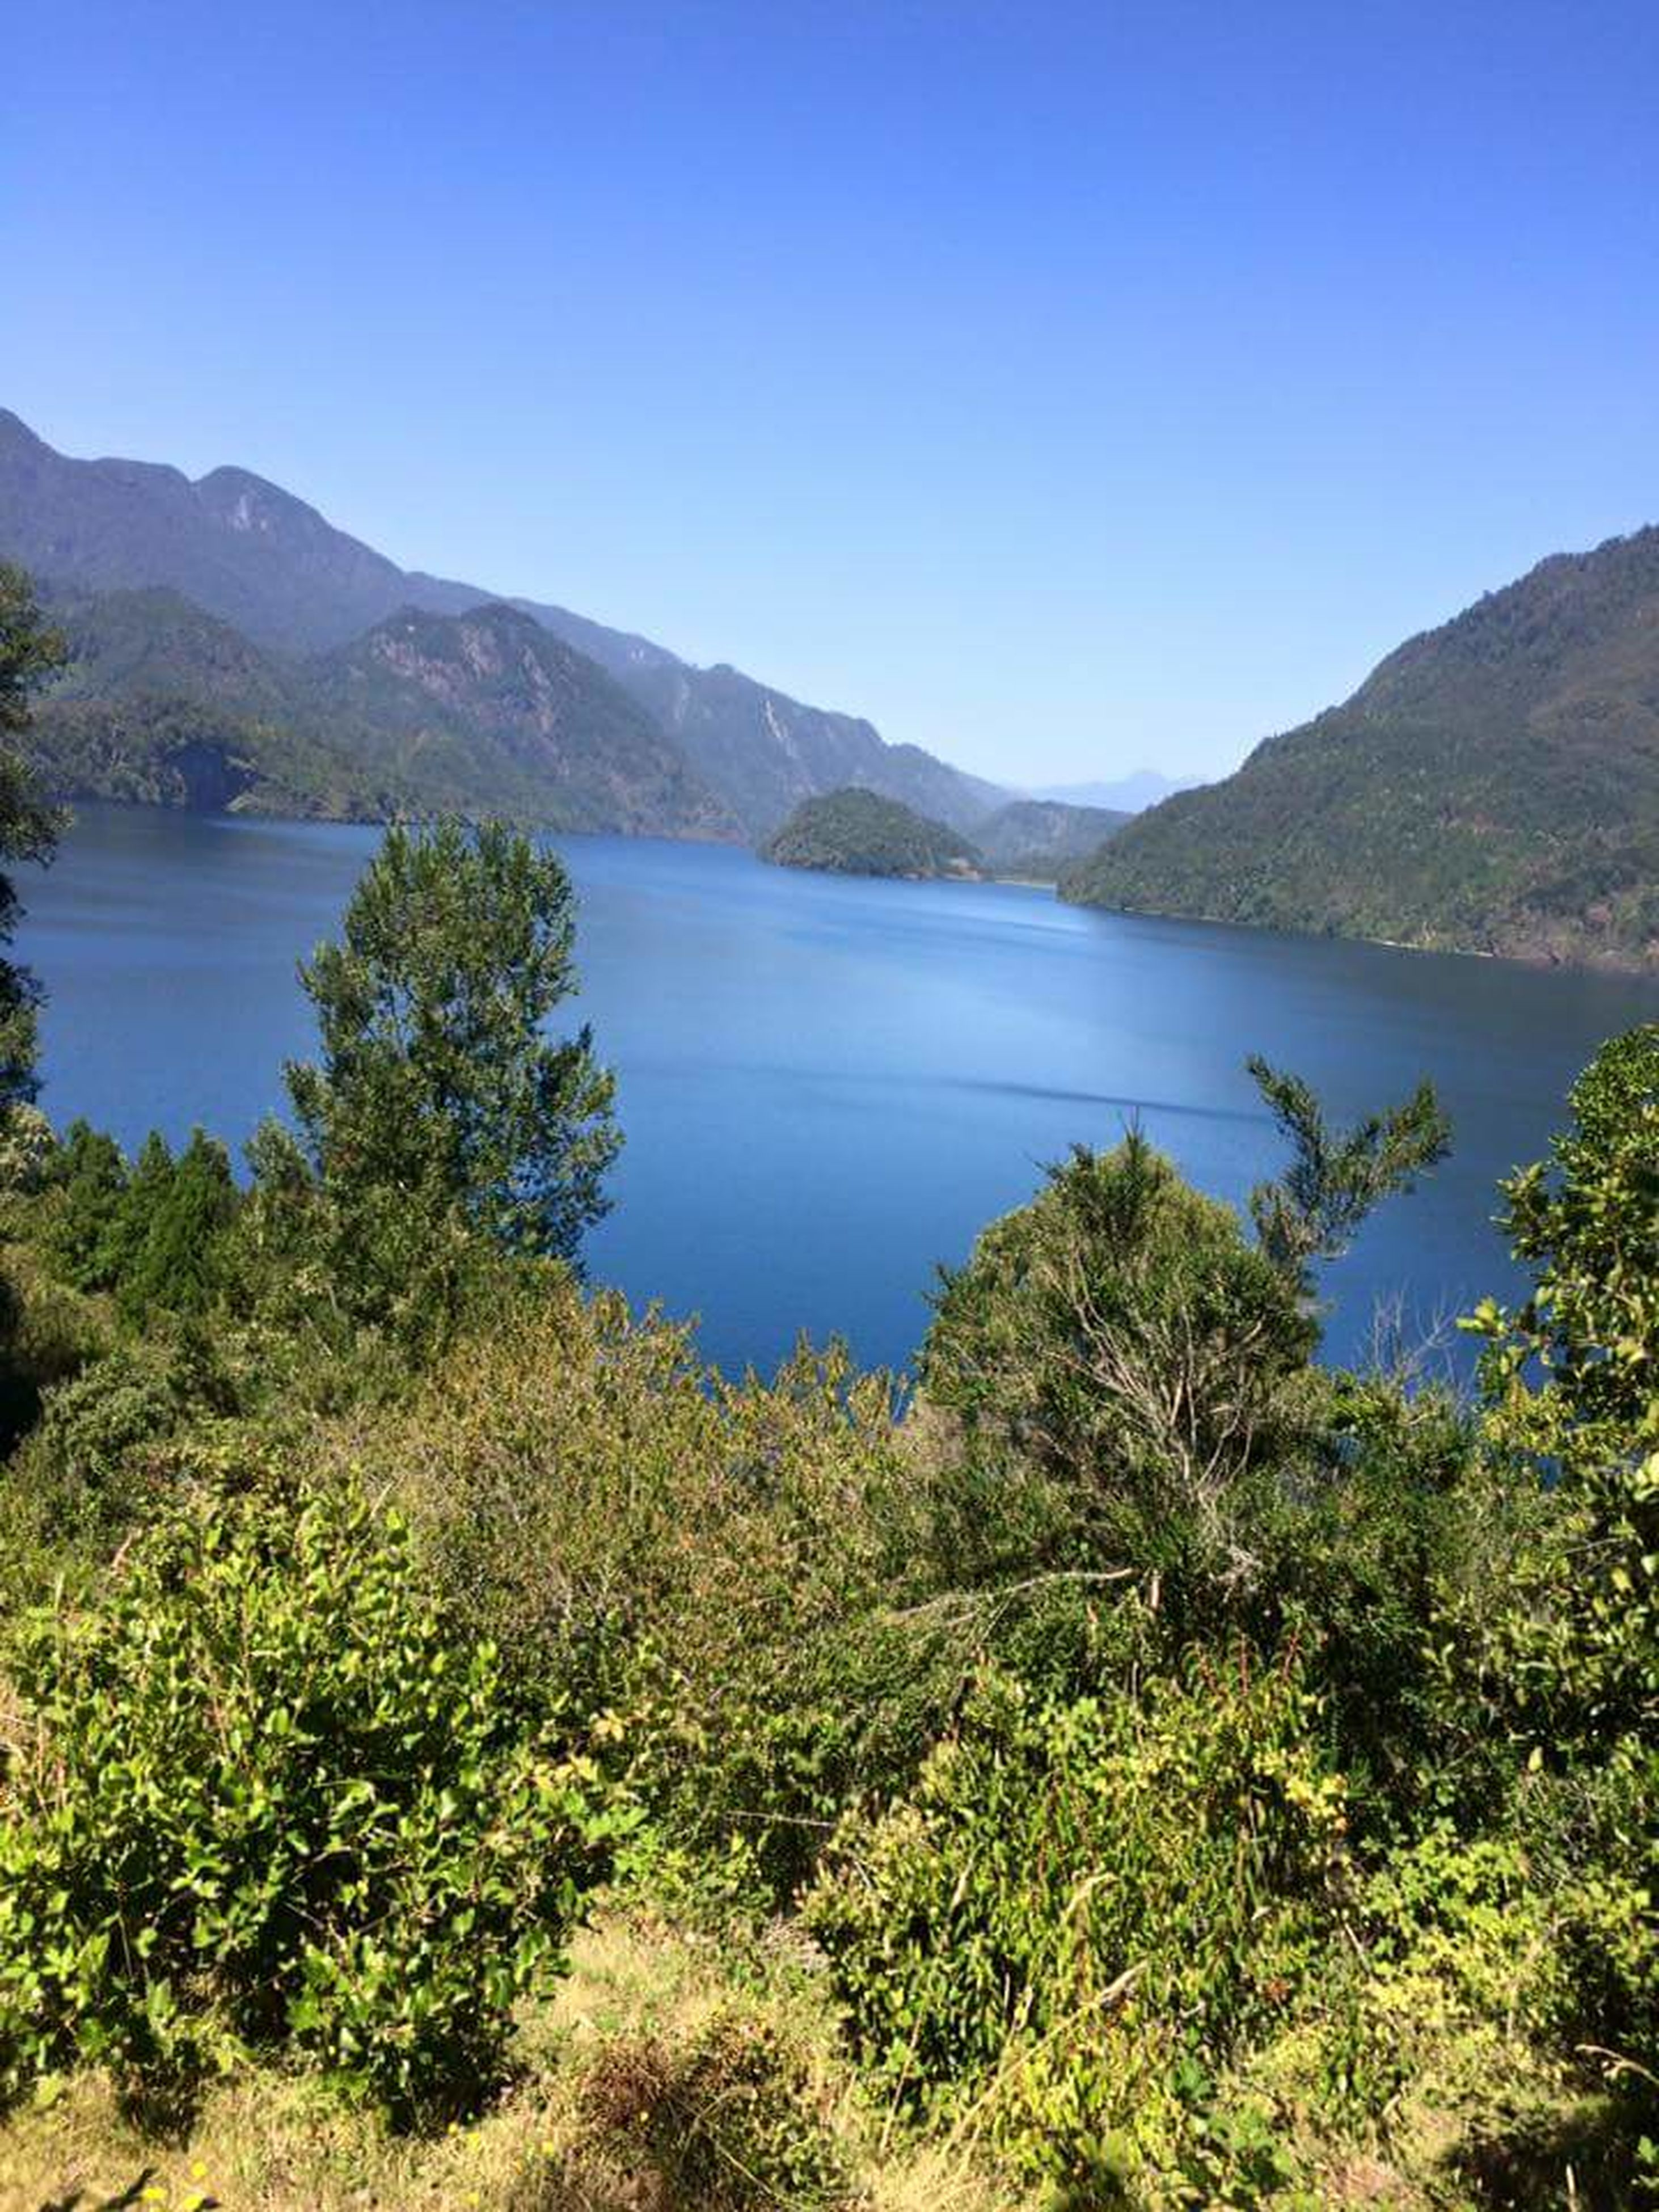 blue, clear sky, water, lake, sky, outdoors, tree, landscape, nature, day, no people